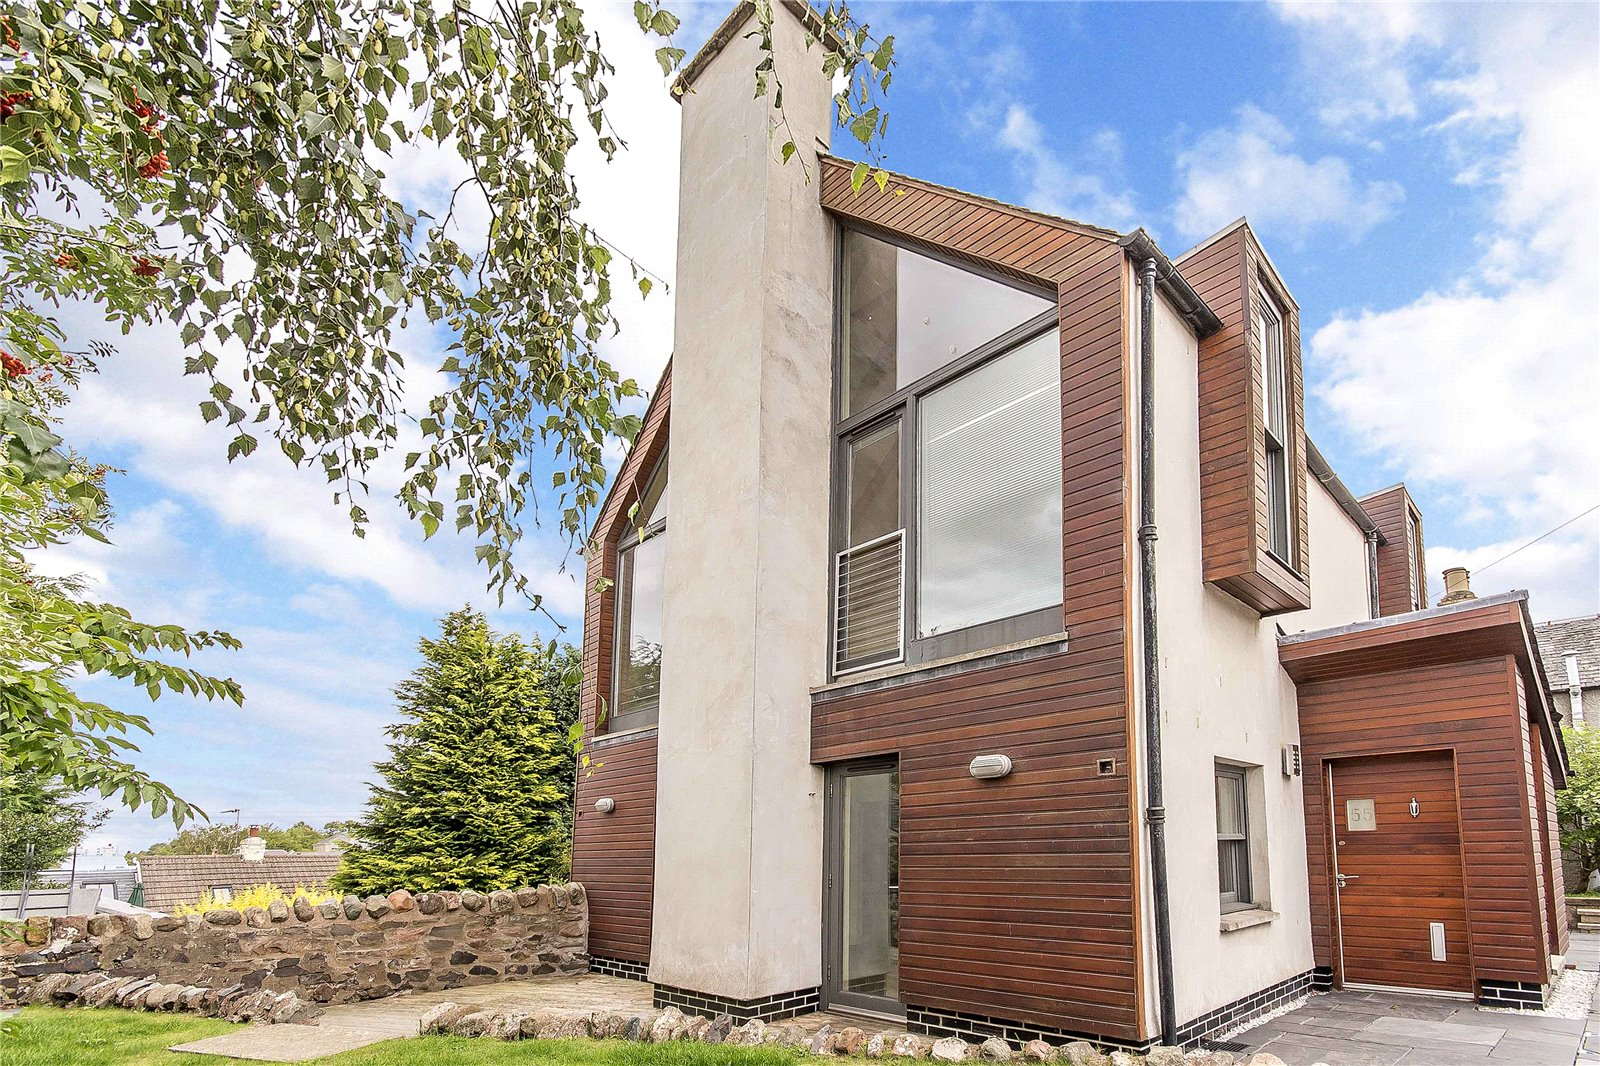 This architect-designed home is like no other on Perthshire's market